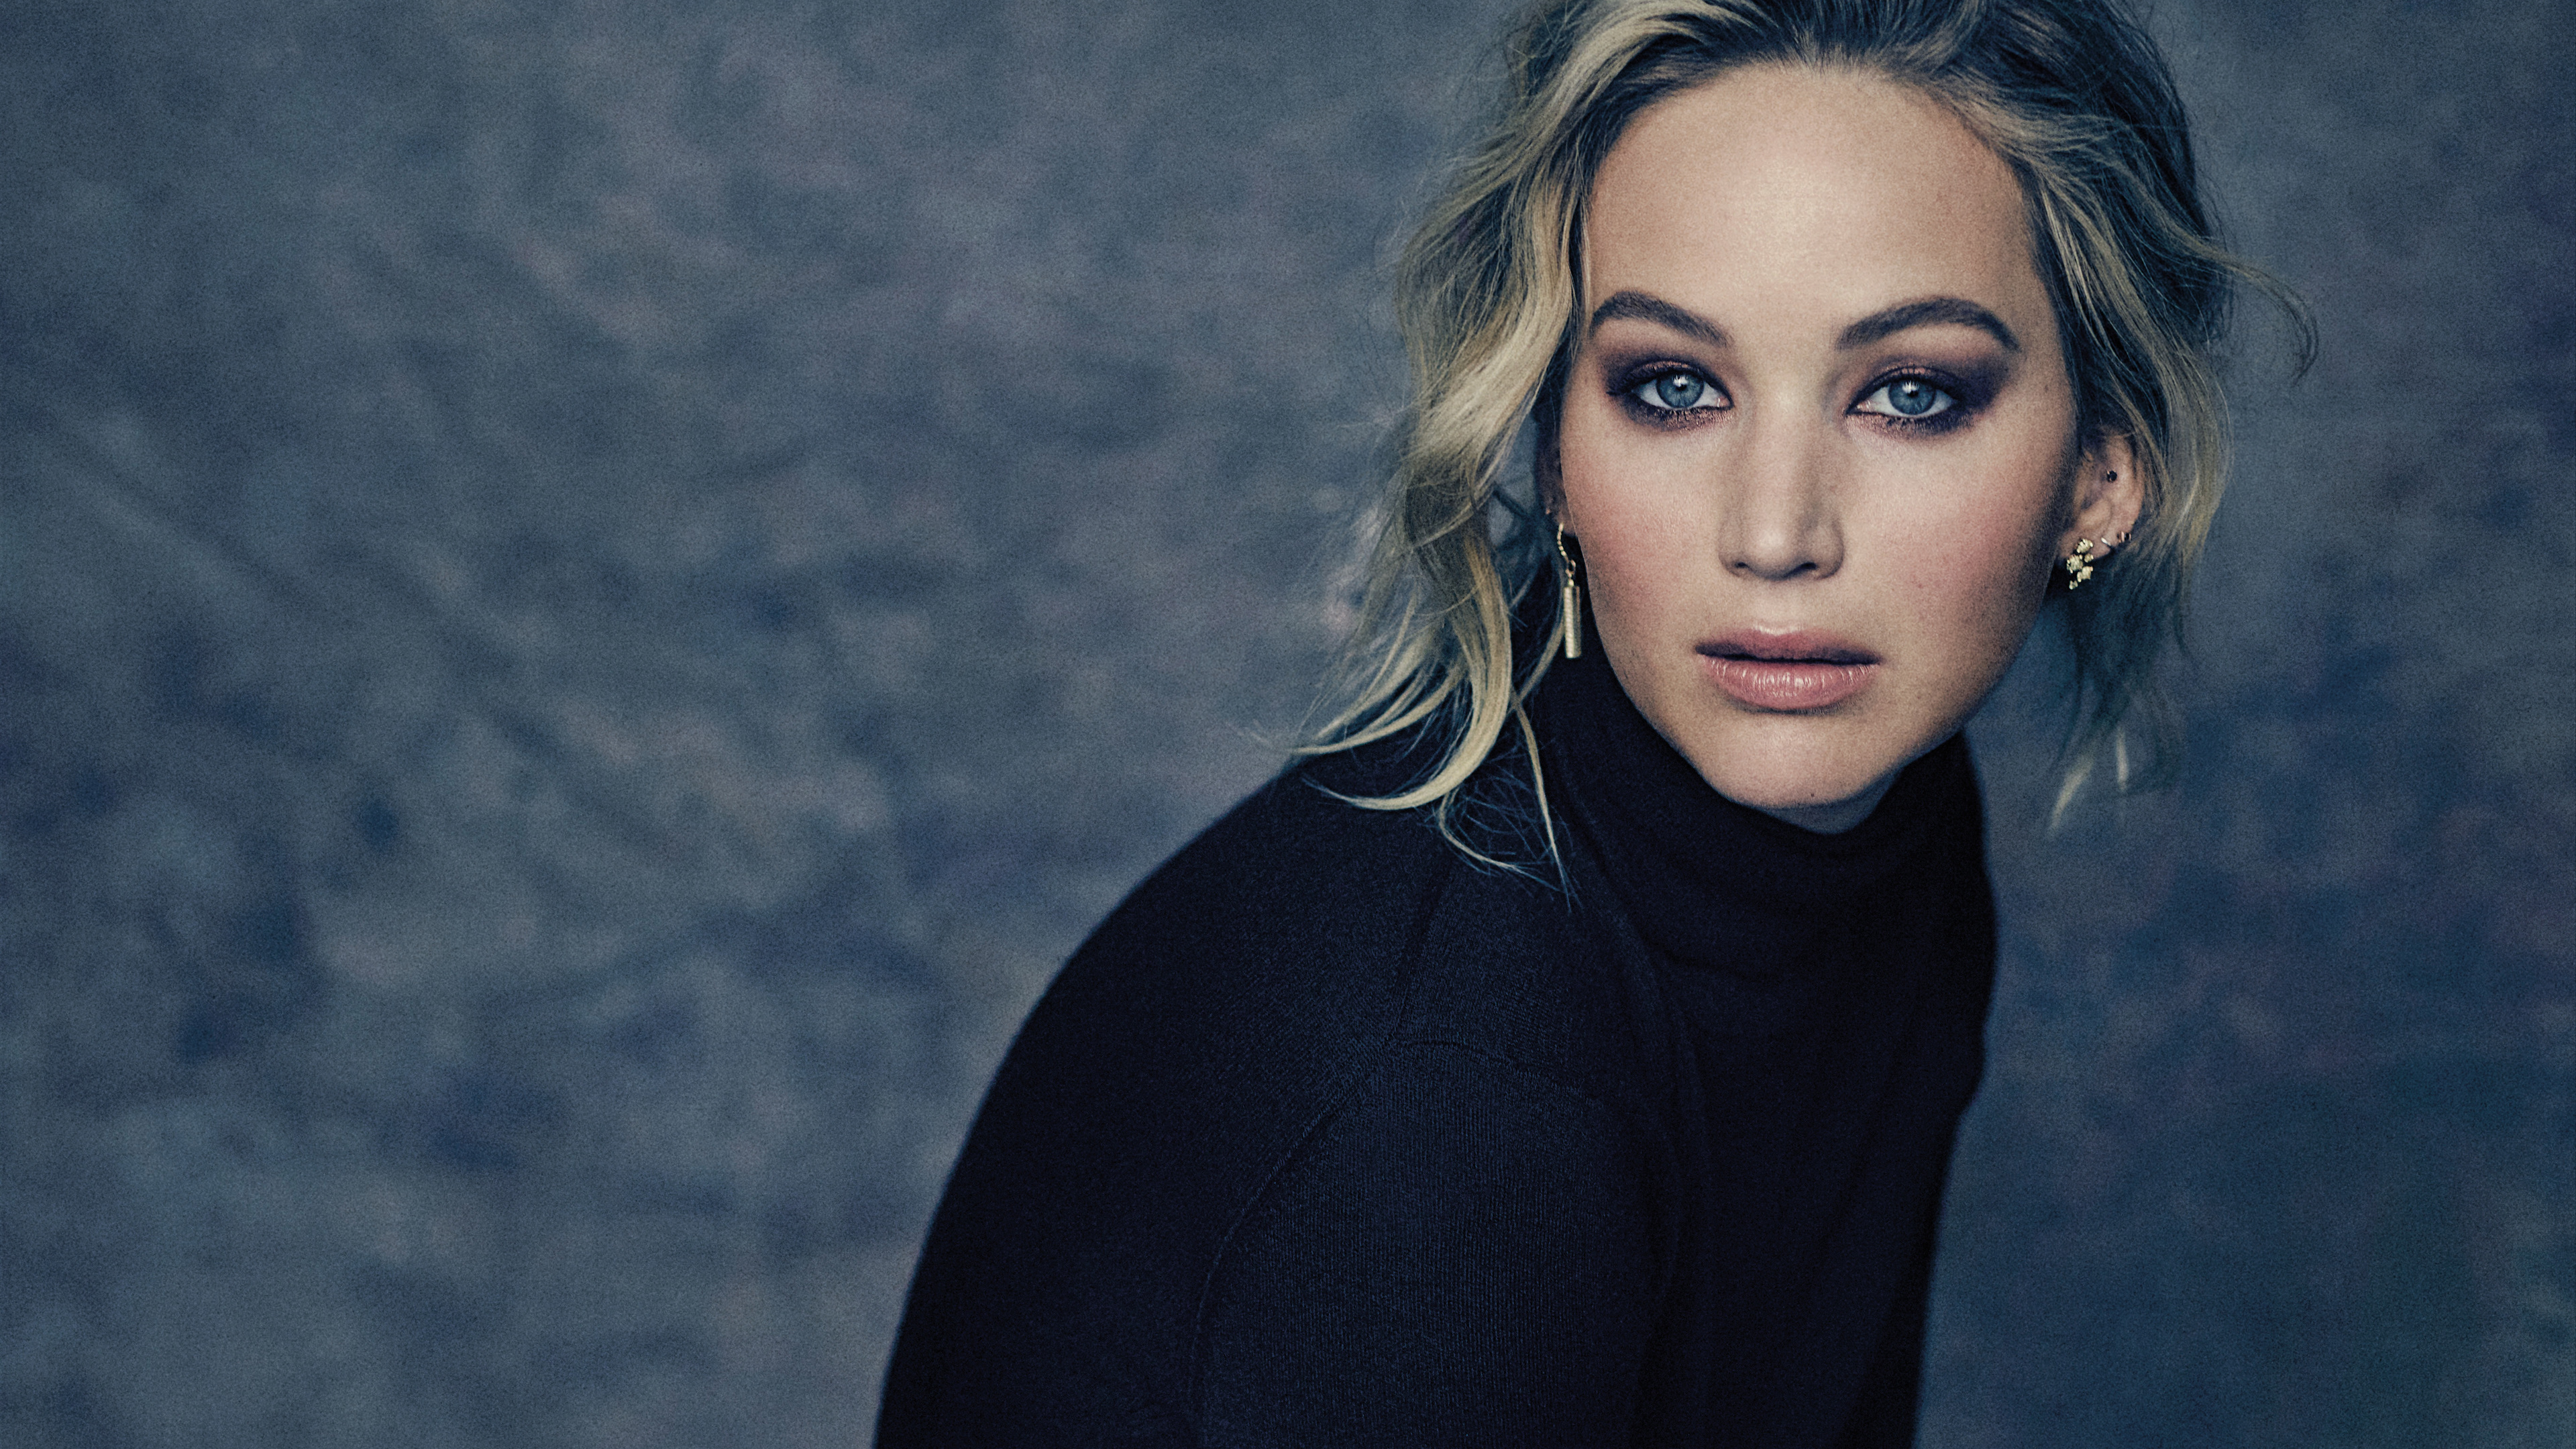 jennifer lawrence the hollywood reporter 2017 5k 1536862426 - Jennifer Lawrence The Hollywood Reporter 2017 5k - model wallpapers, jennifer lawrence wallpapers, hd-wallpapers, girls wallpapers, celebrities wallpapers, 5k wallpapers, 4k-wallpapers